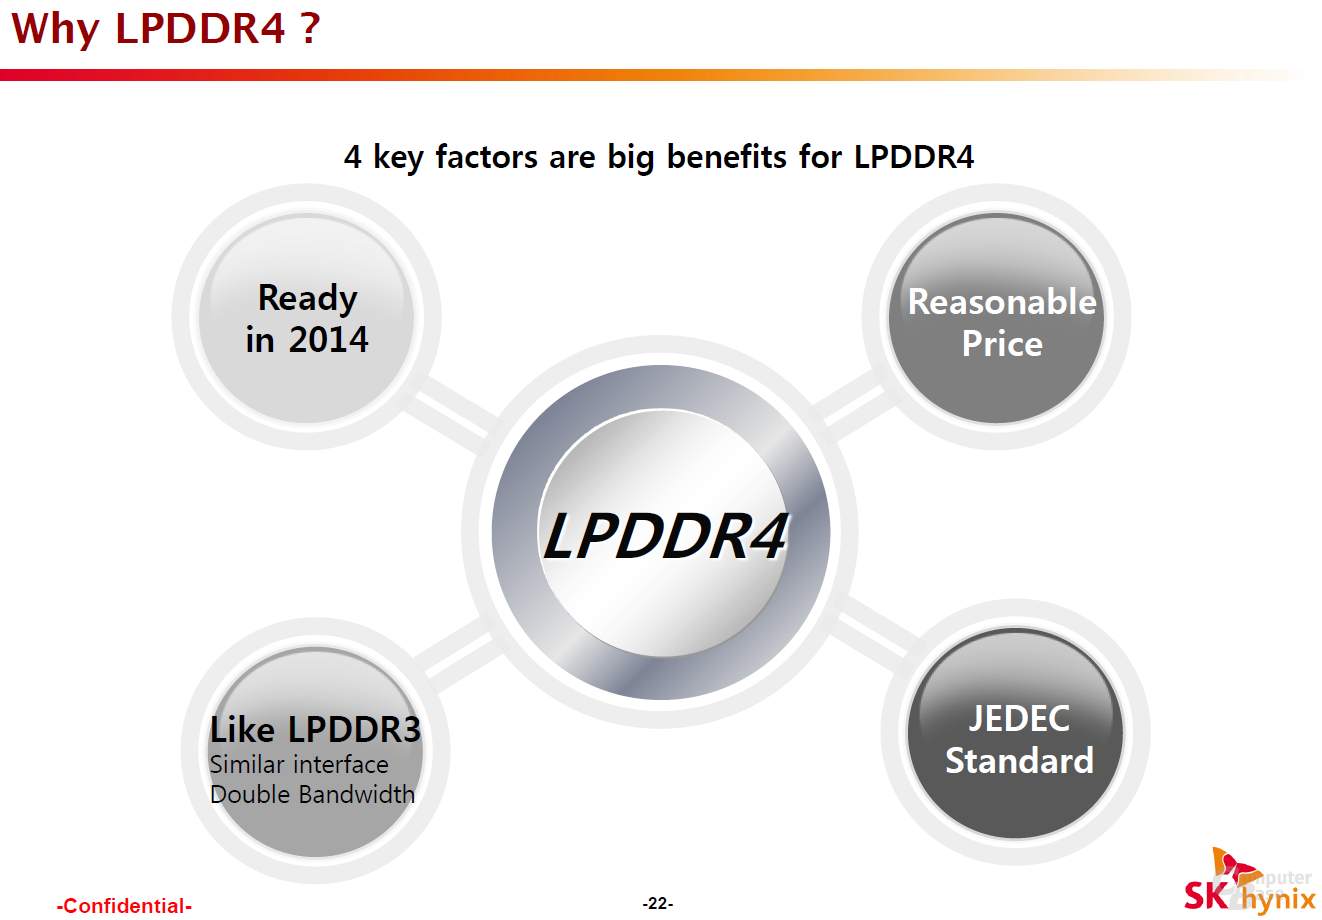 Why LPDDR4